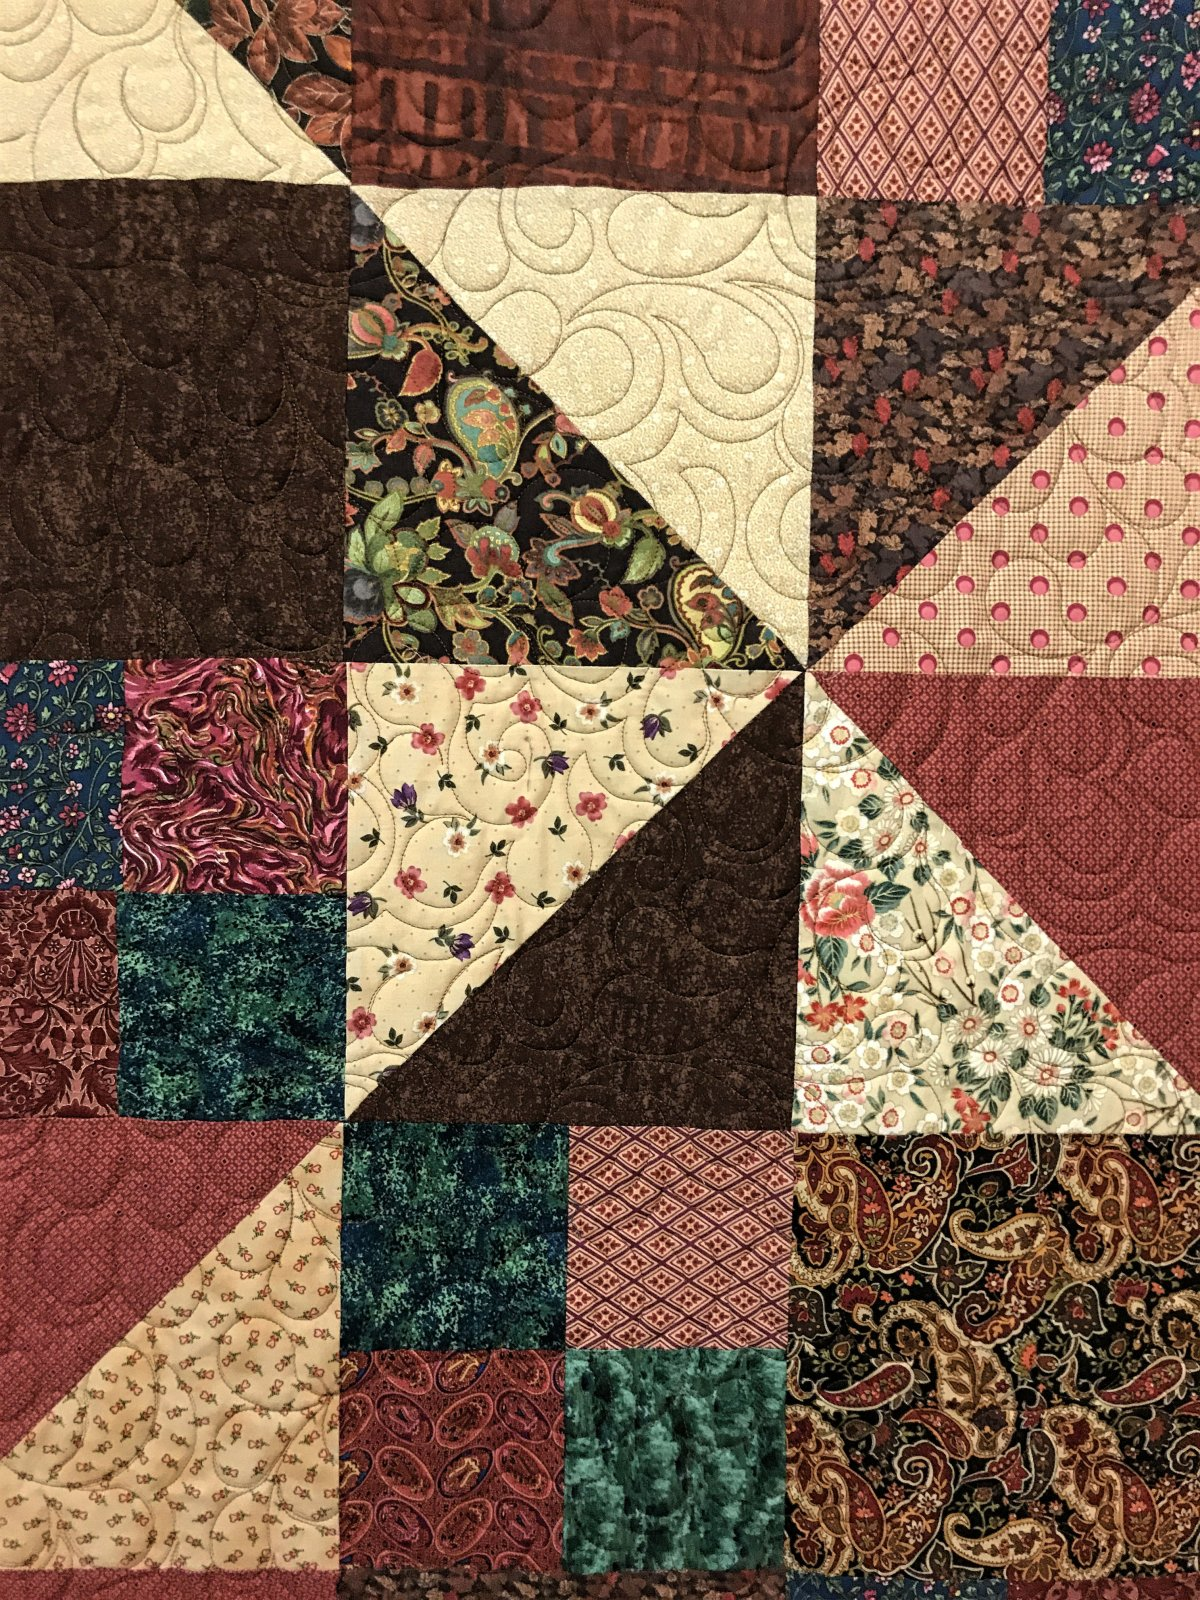 Bed Quilt, close up